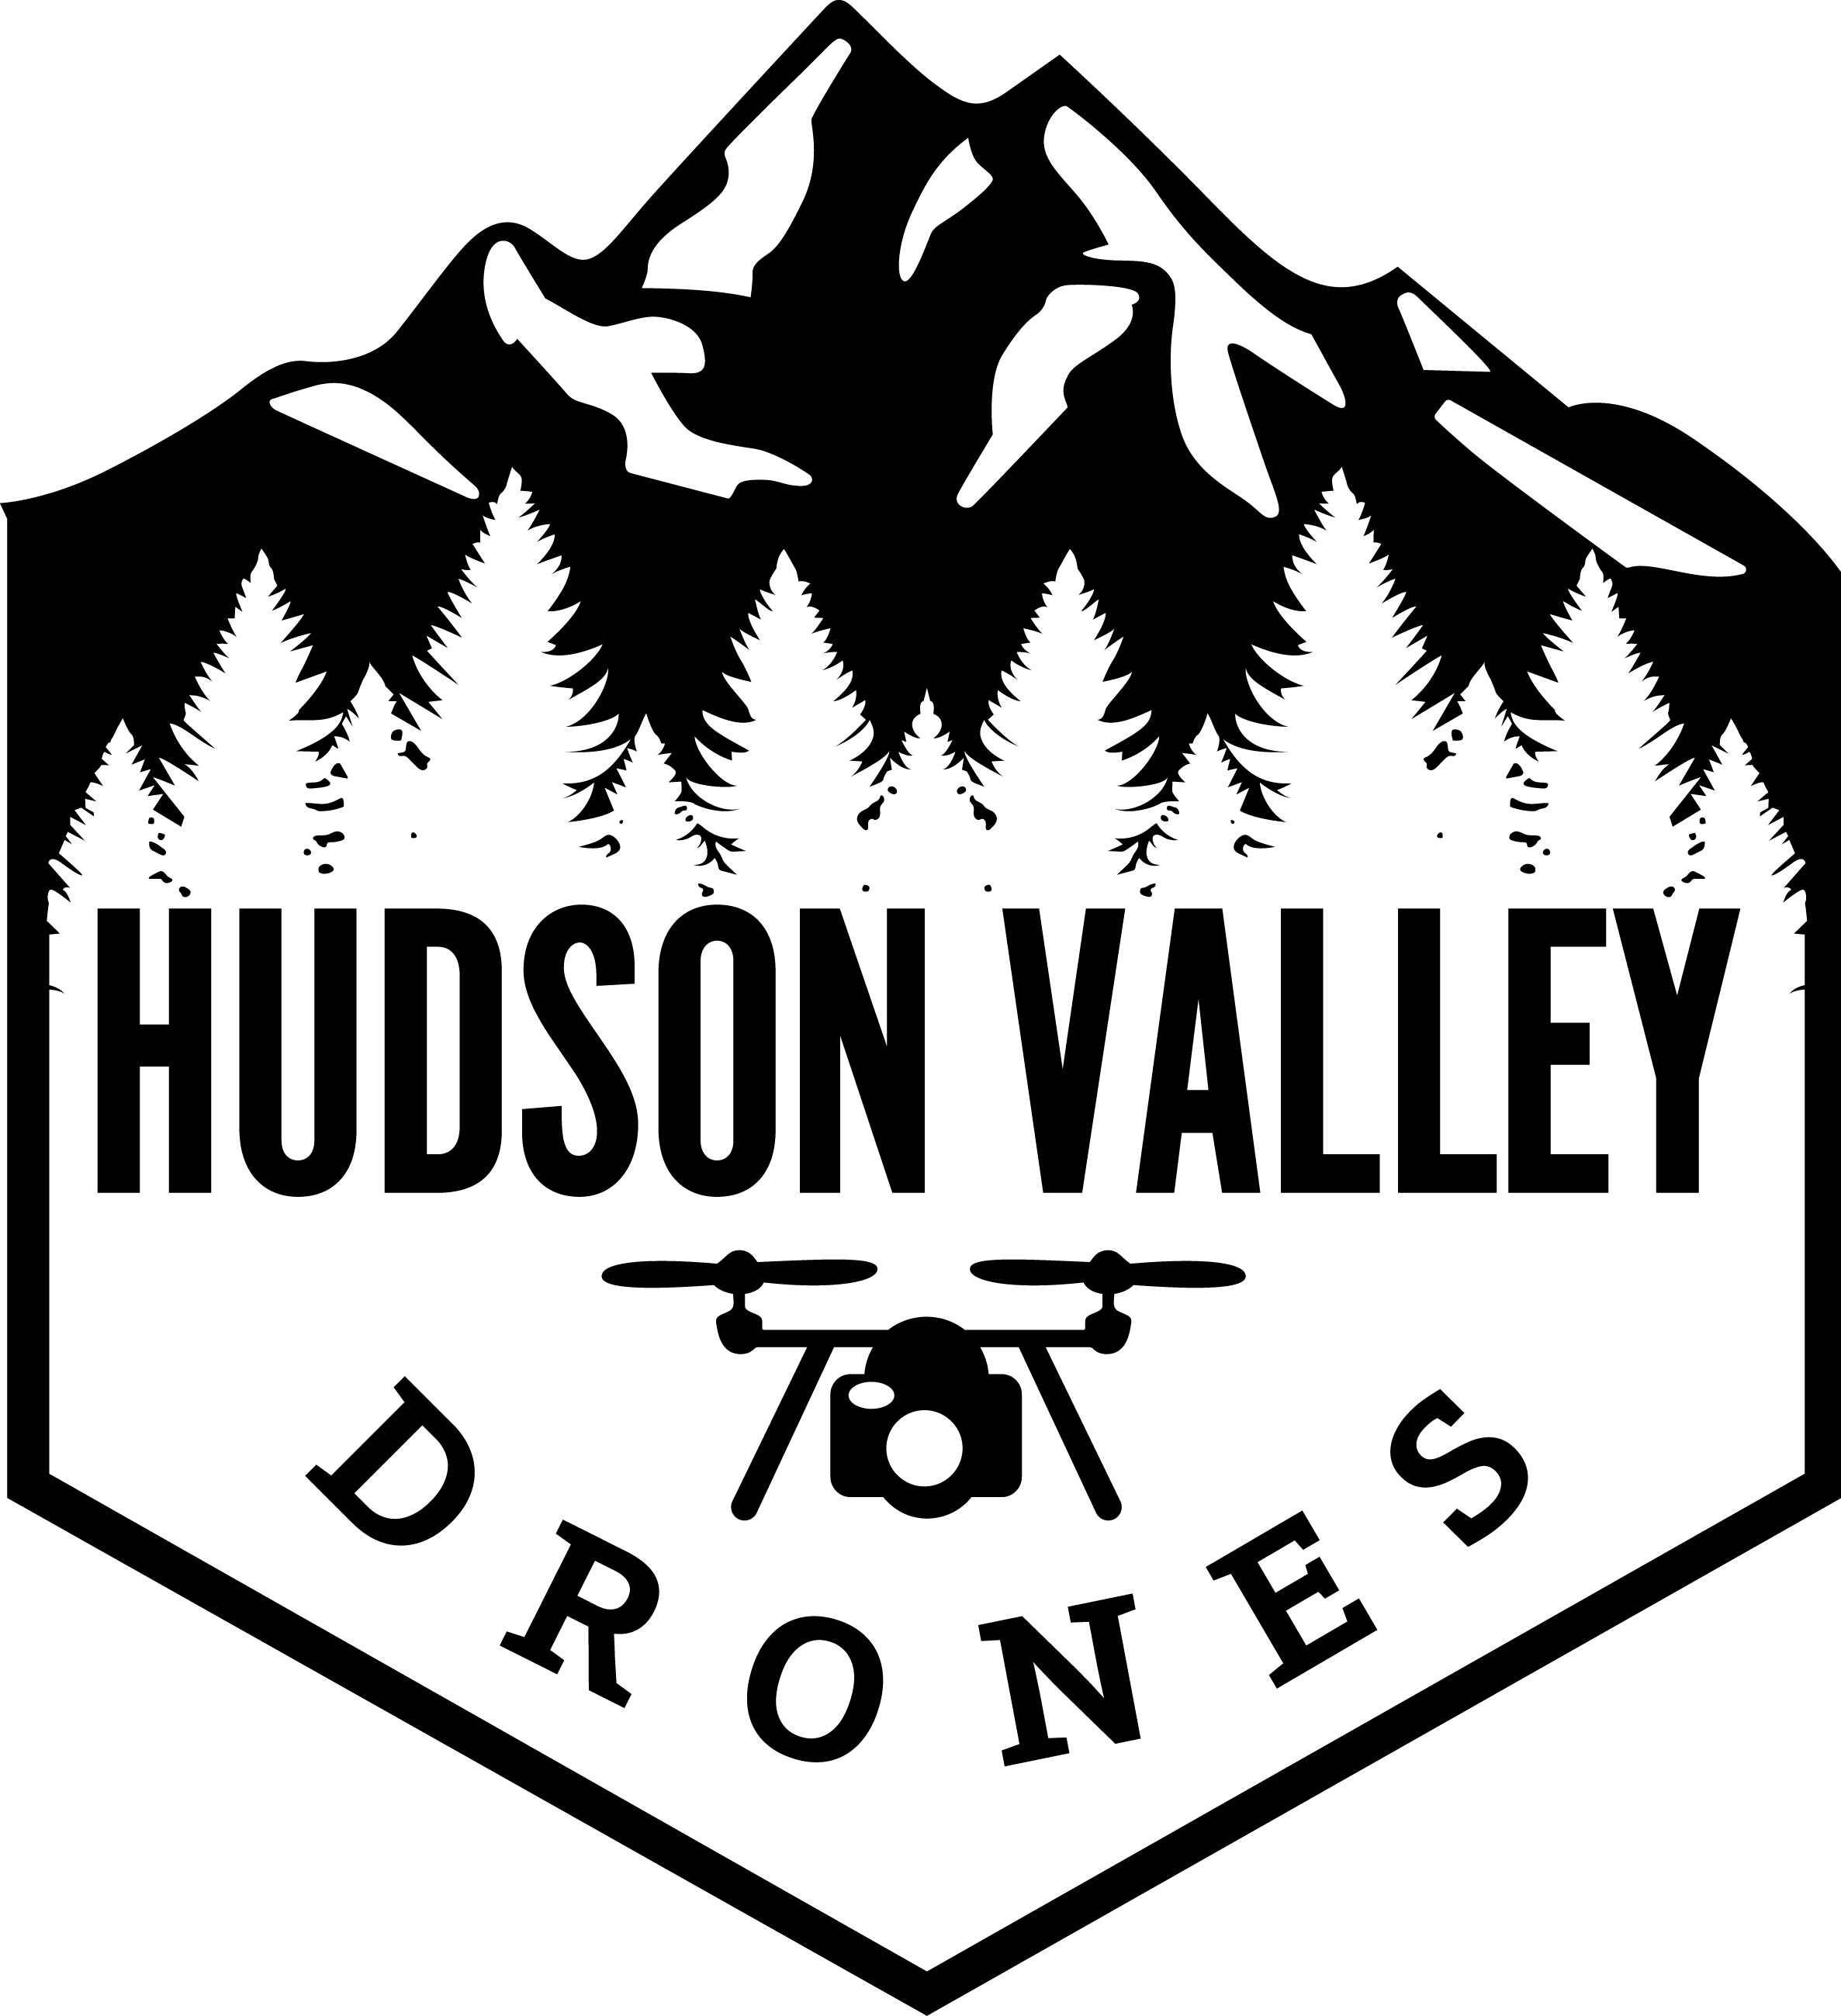 Hudson Valley Drones.png